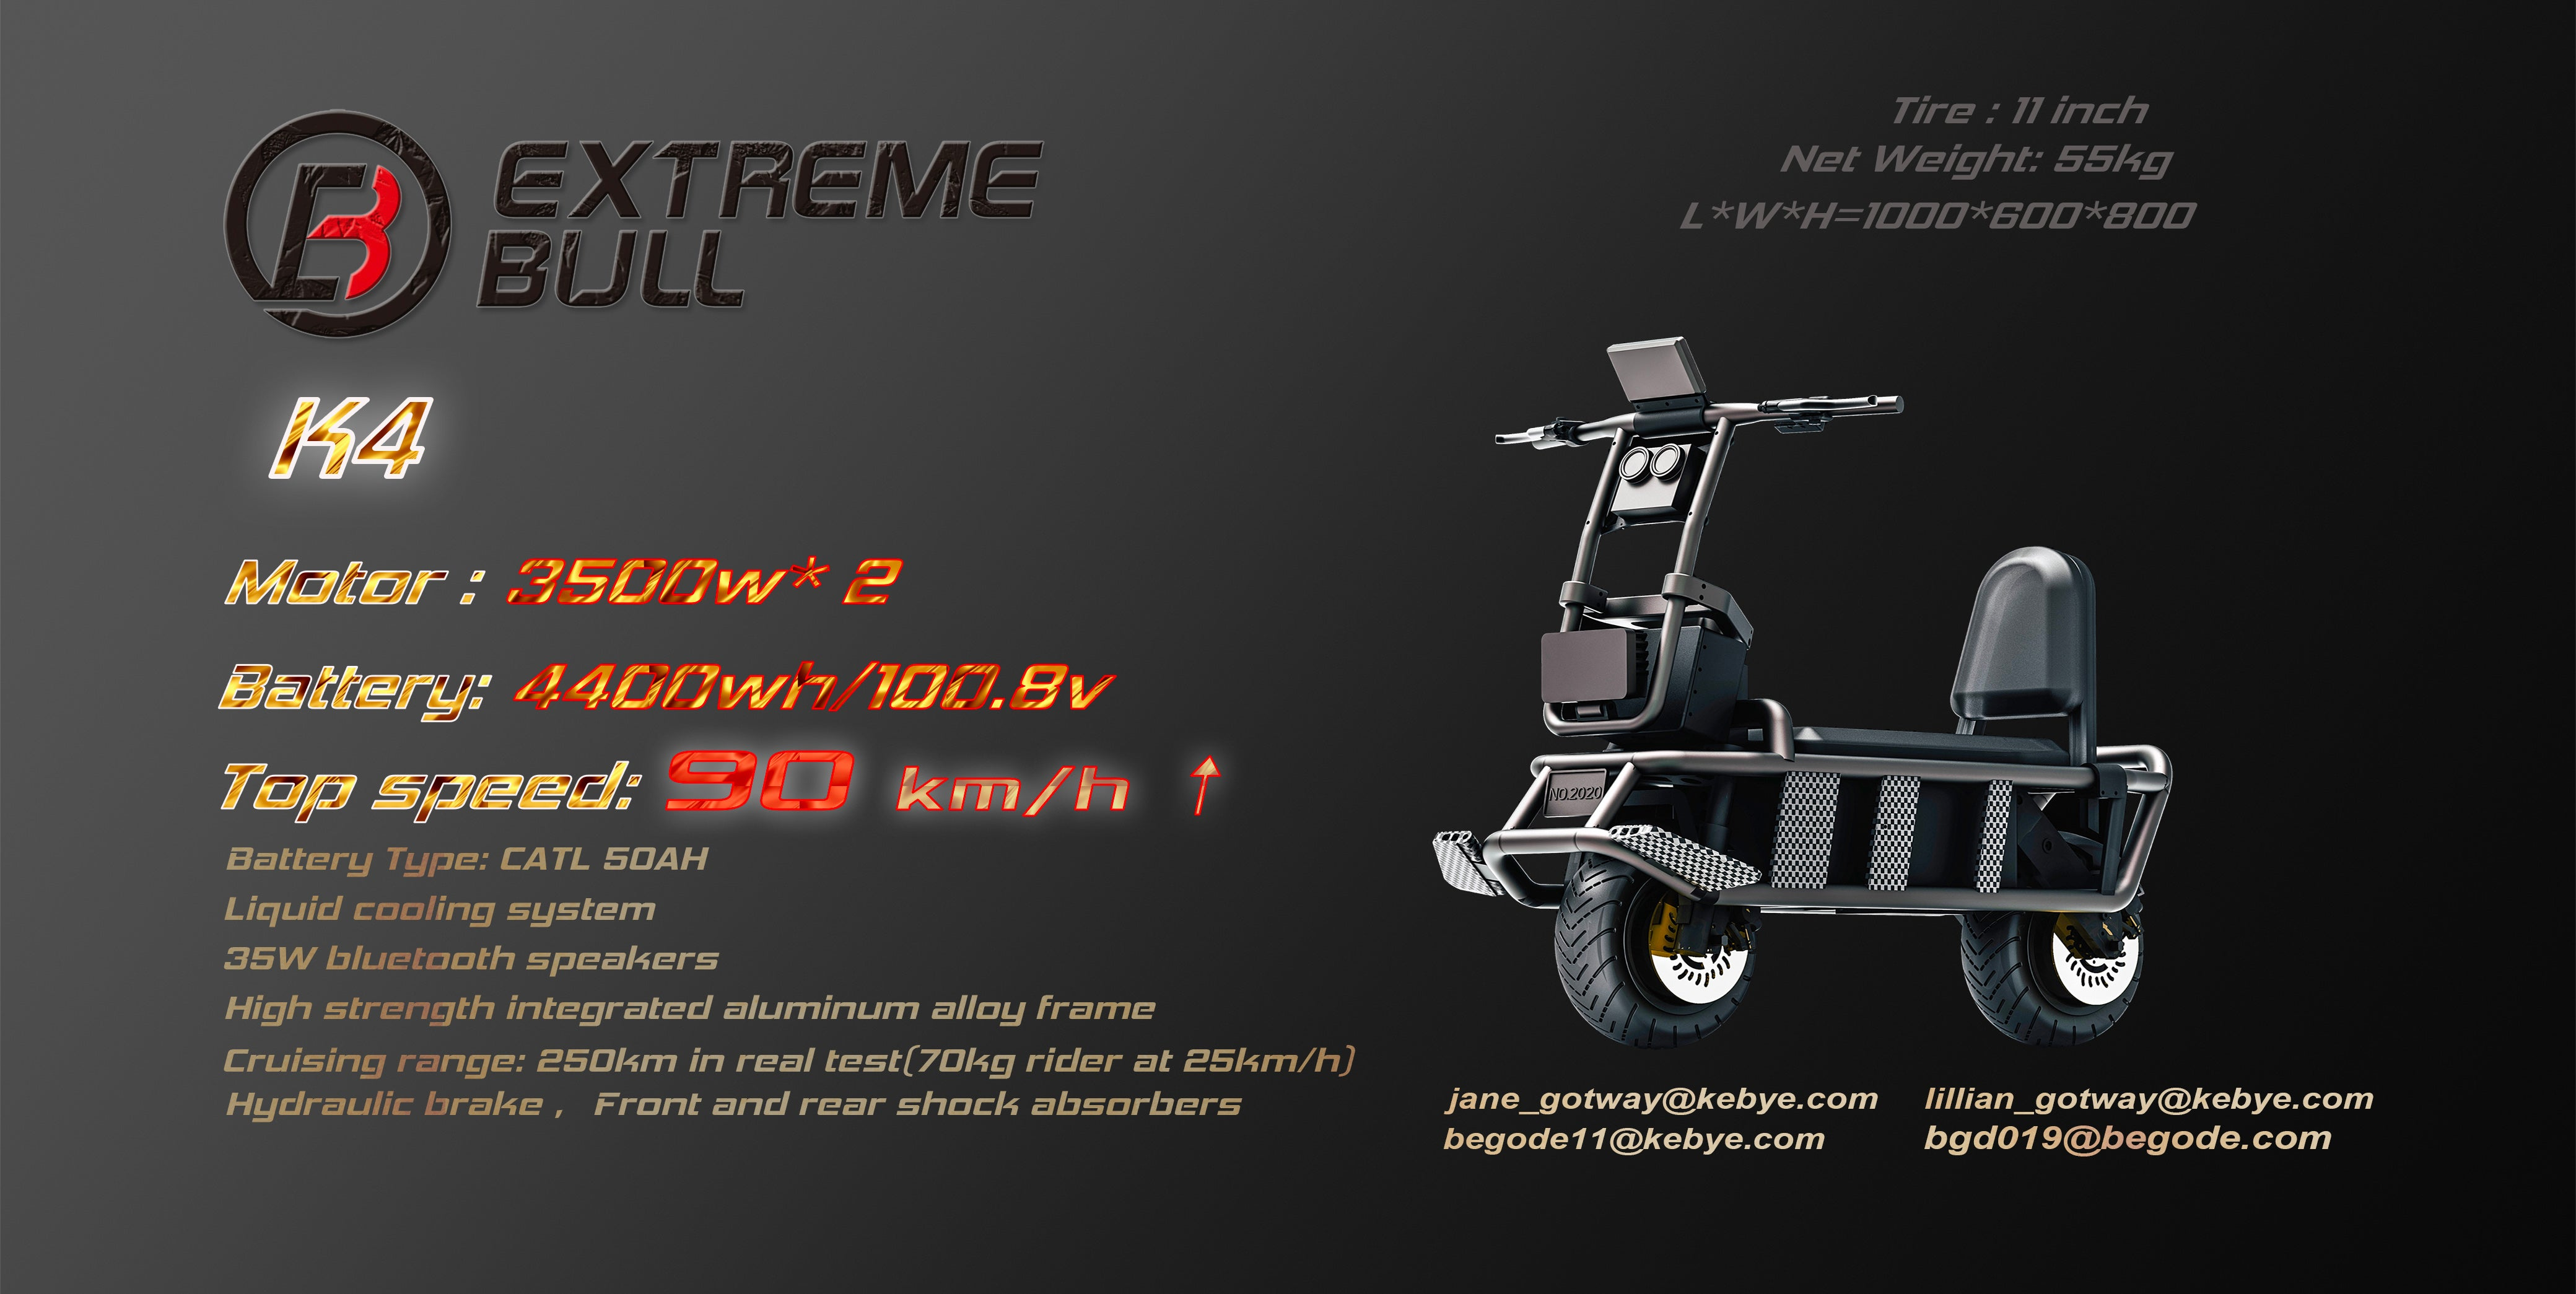 Extreme Bull Specifications